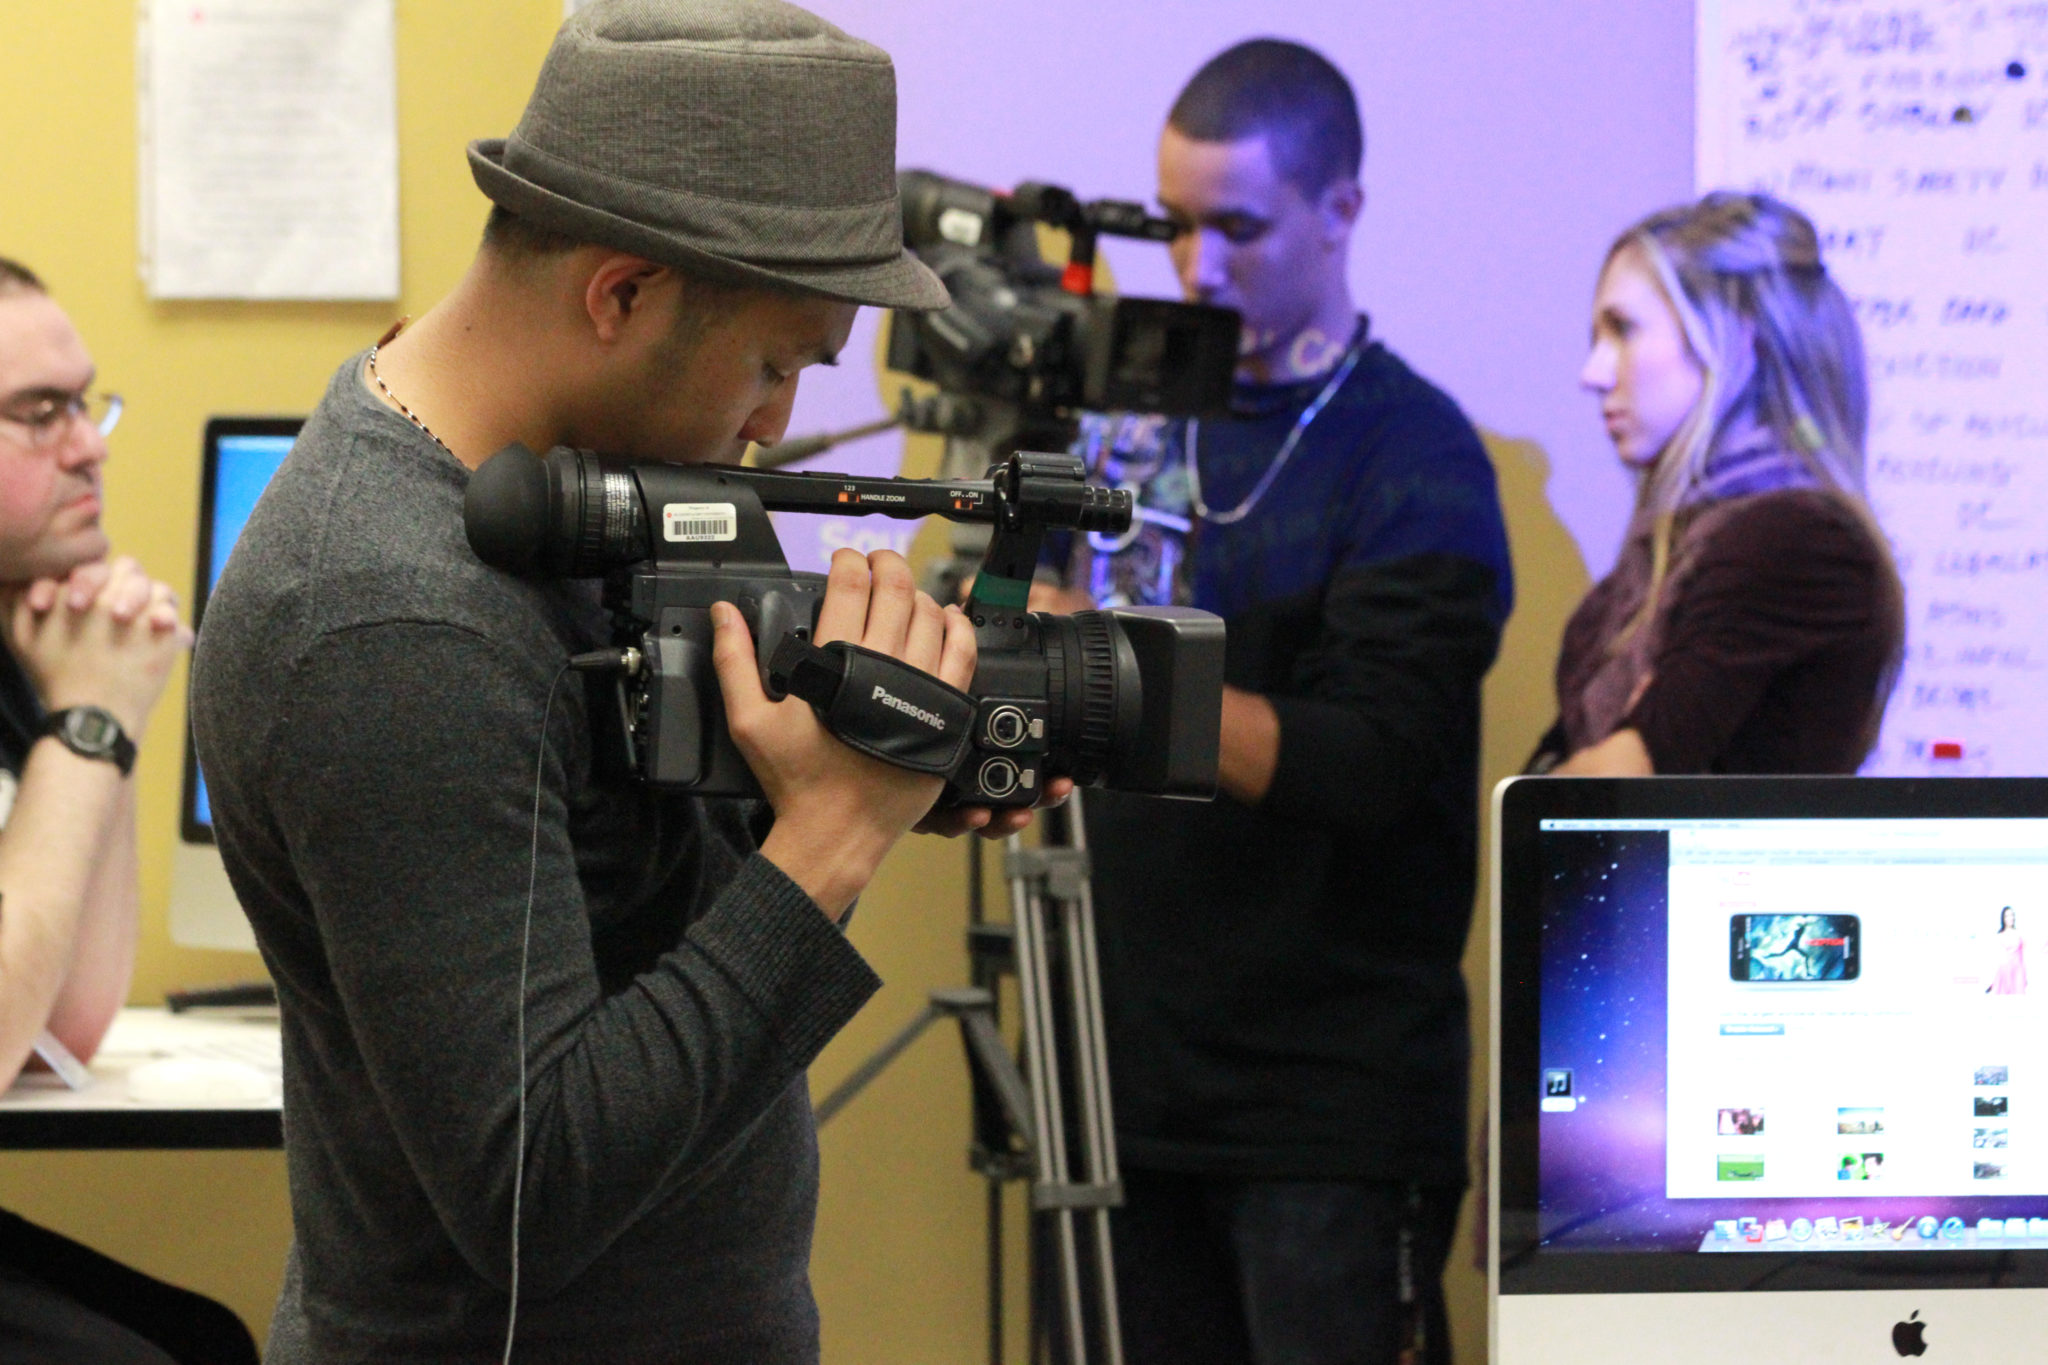 Communications student recording with camera